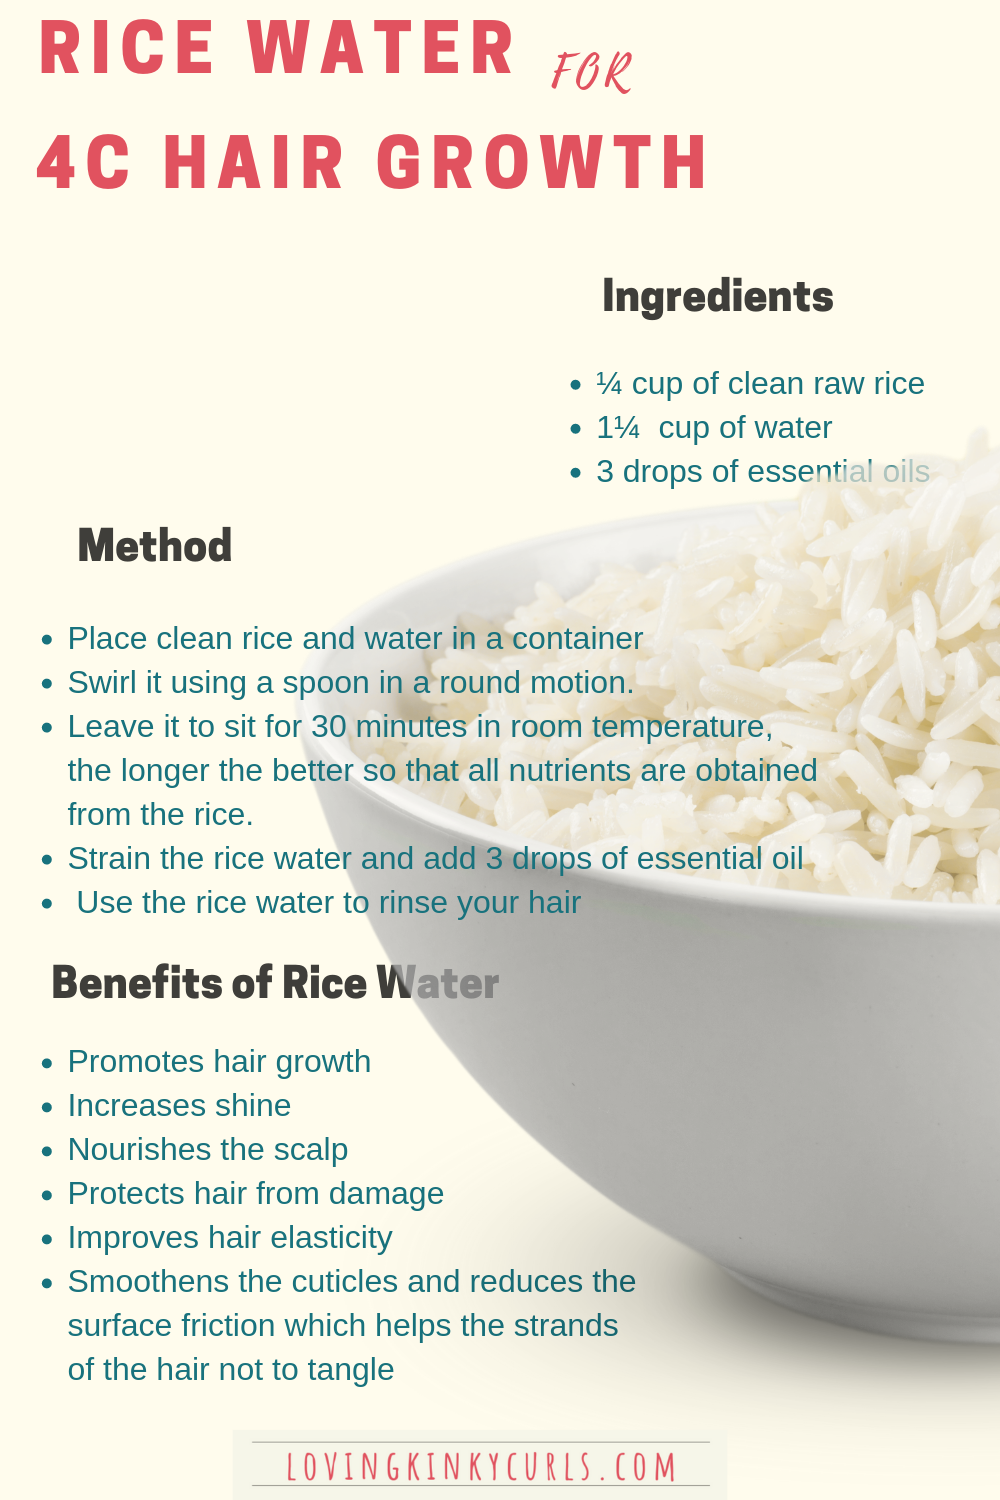 Here is one of the many rice water recipes that you can incorporate in your 4C natural hair routine for faster hair growth. For best results, use the rice water on a weekly basis. #hair #growth #ricewater #naturalhair #naturalhairgrowth #4chair #4chairgrowthtips